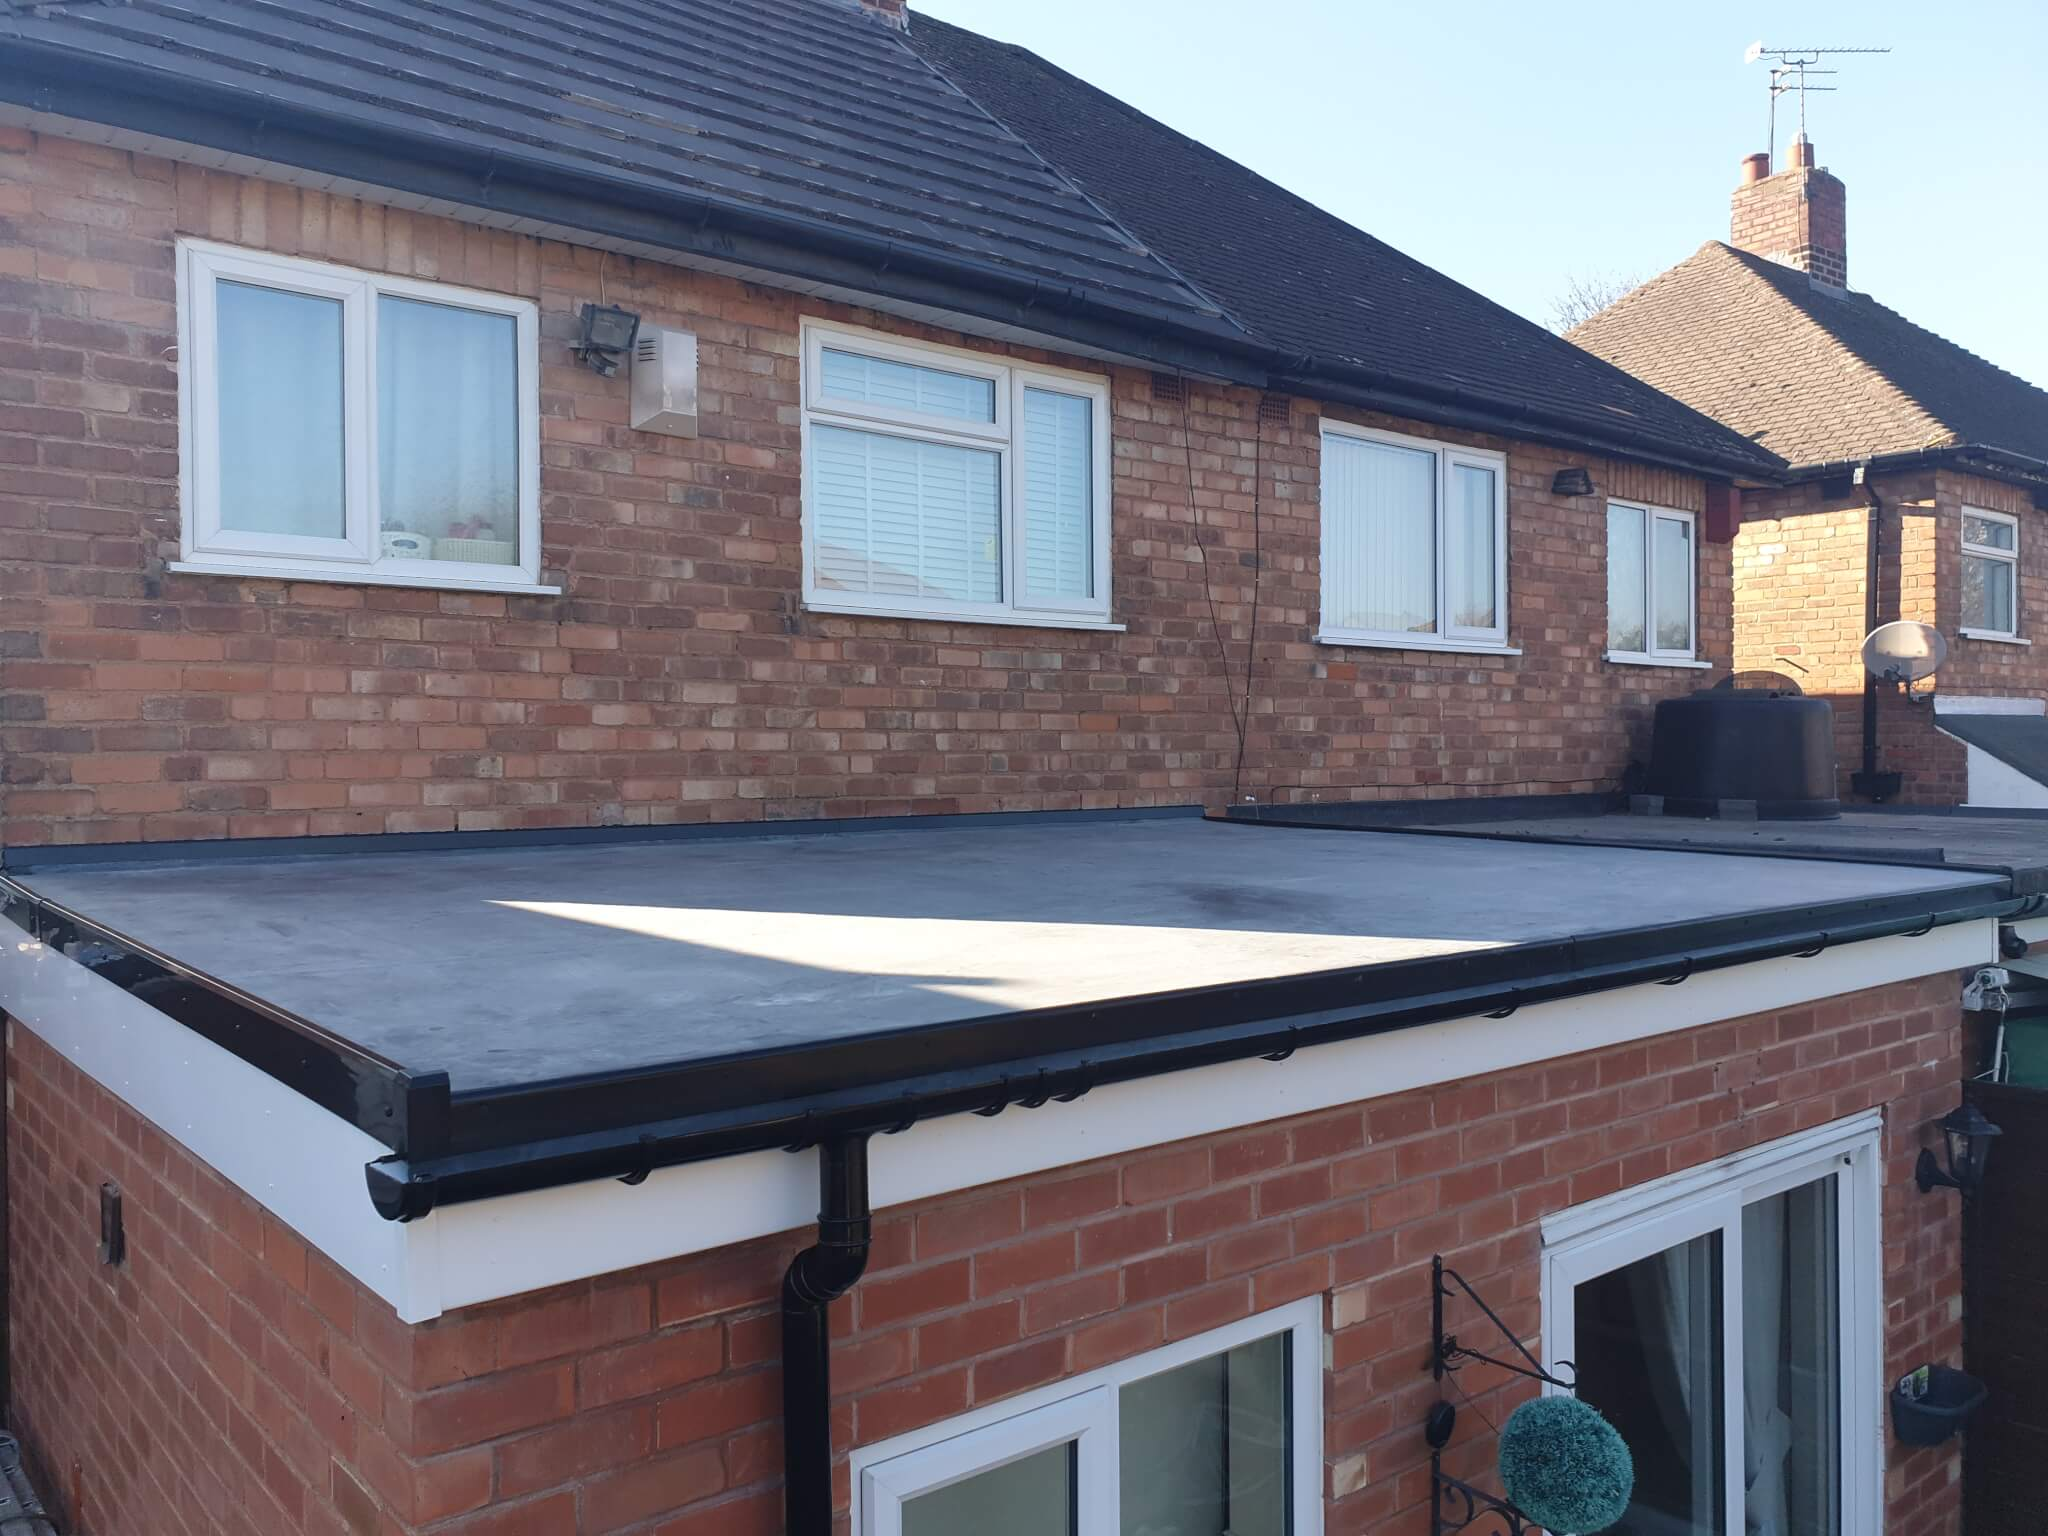 Rubber Roofing & EPDM | J5 Roofing